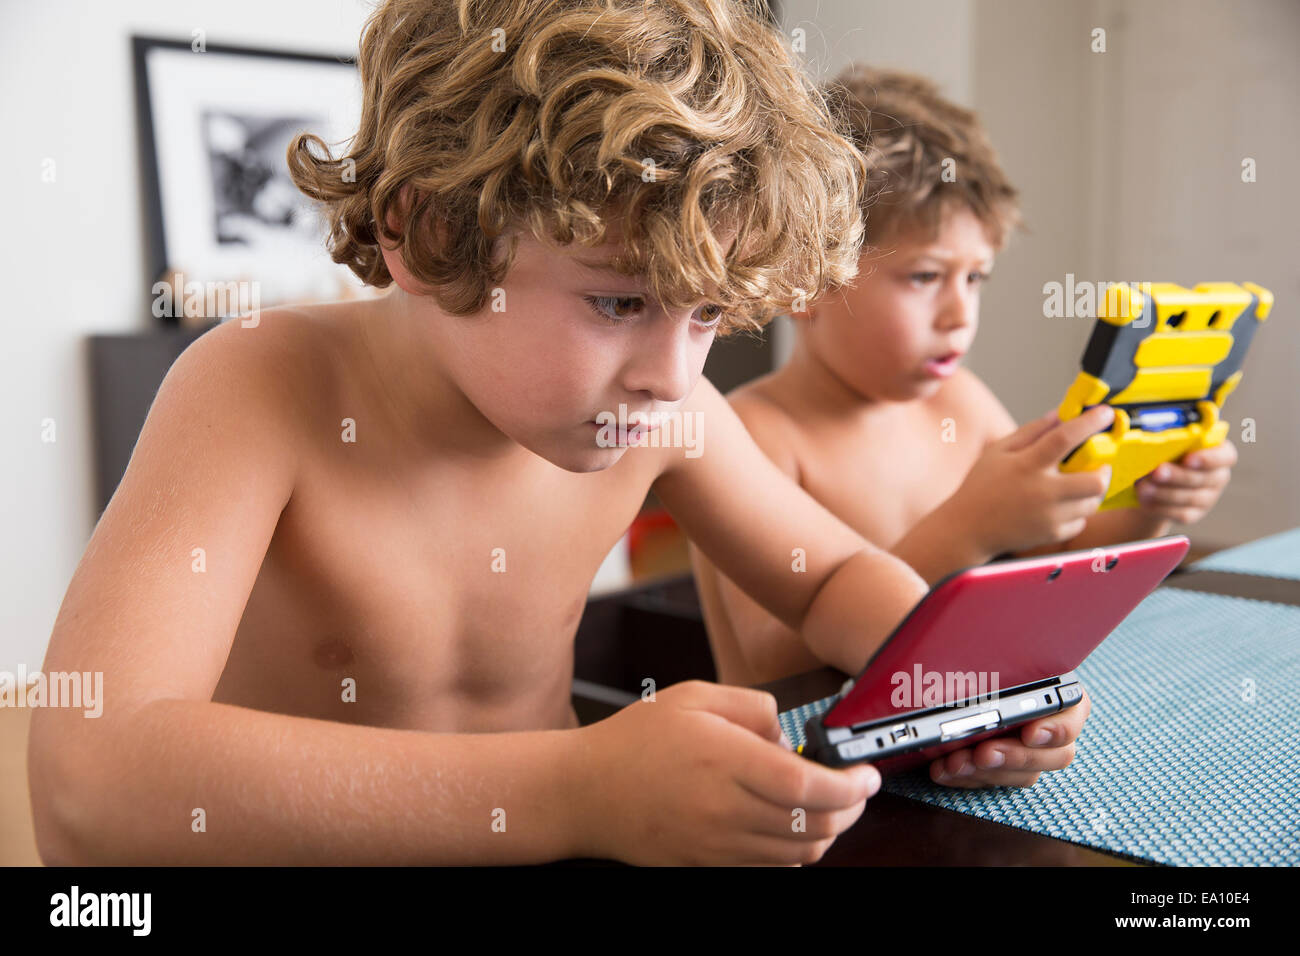 Boys playing with portable game console - Stock Image